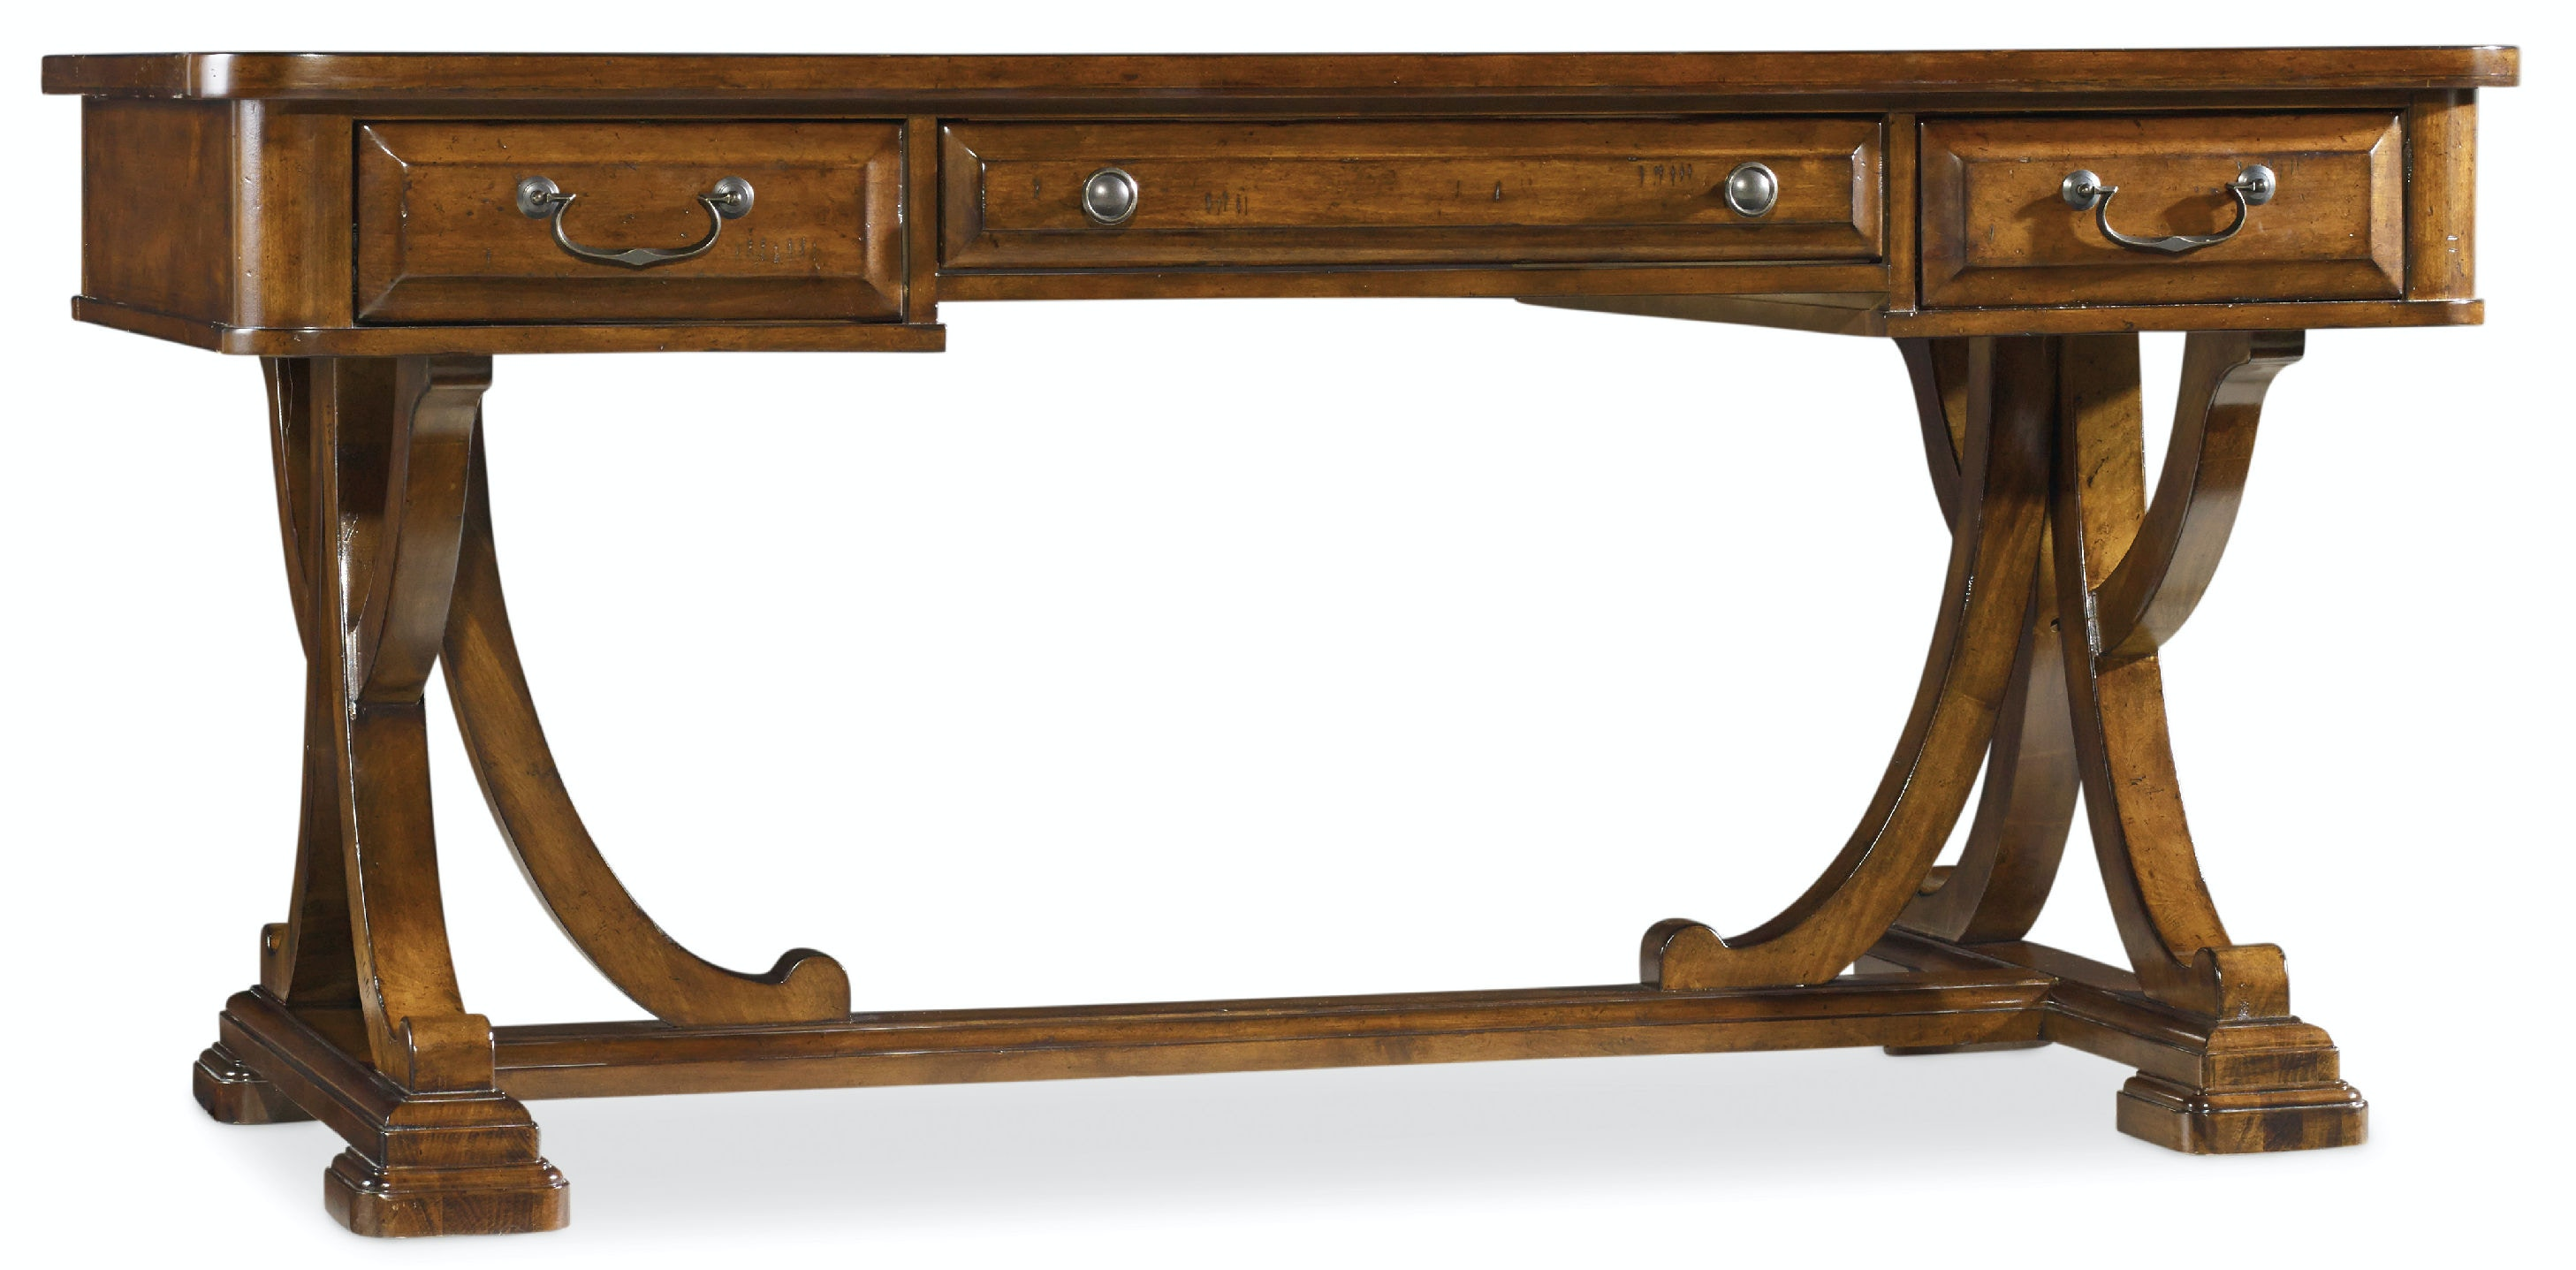 Beau Hooker Furniture Tynecastle Writing Desk 5323 10459